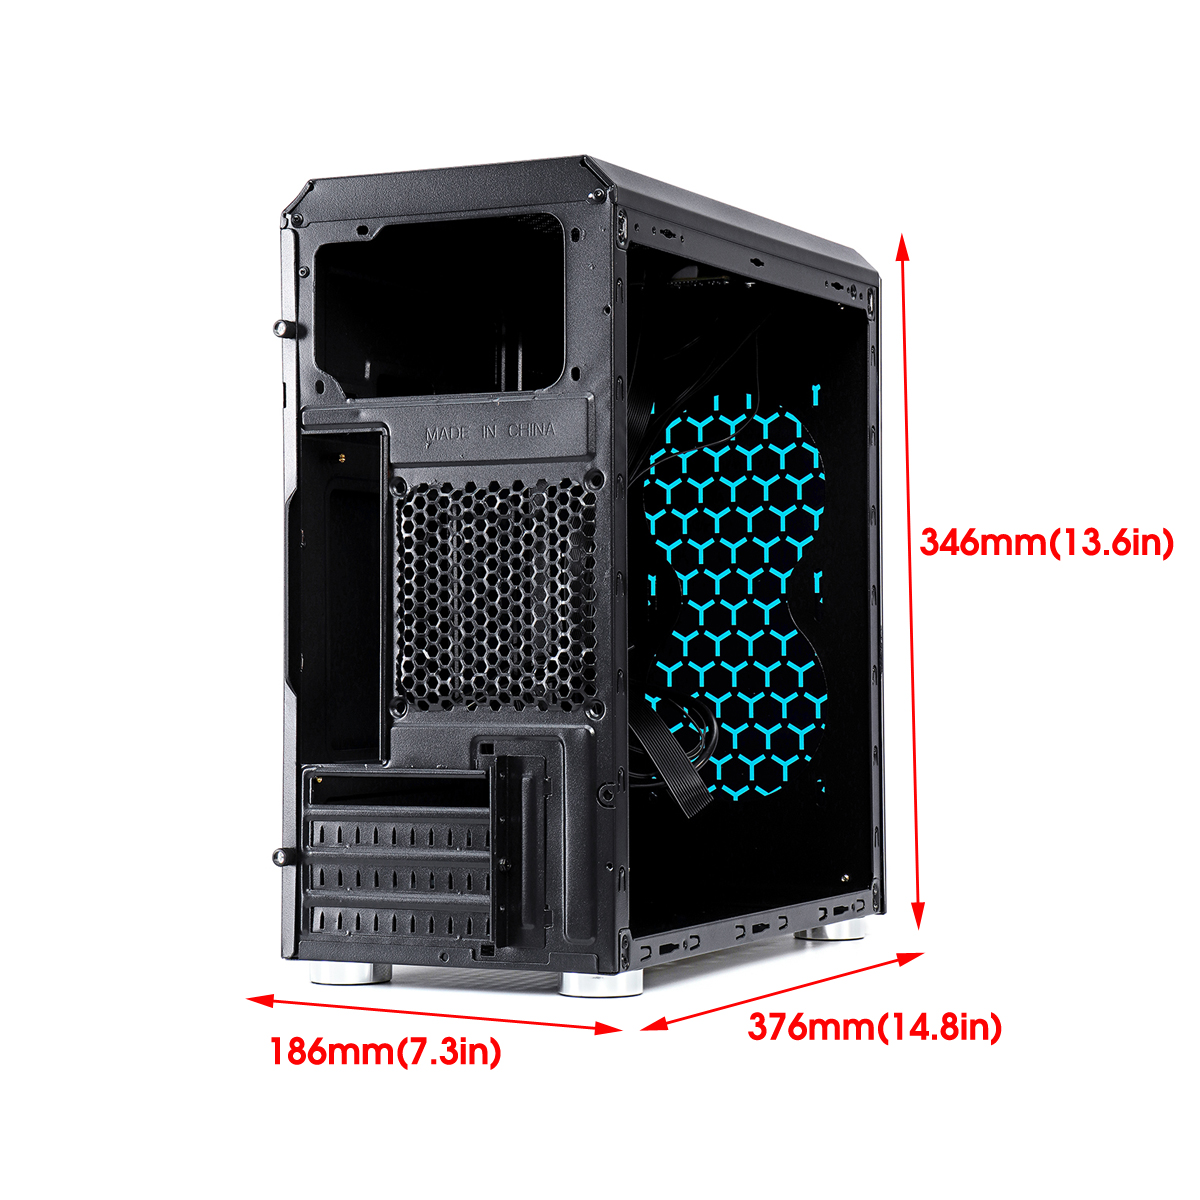 Transparent Acrylic Side Panel Micro ATX Computer PC Gaming Case for Micro-ATX Mini-ITX Motherboard